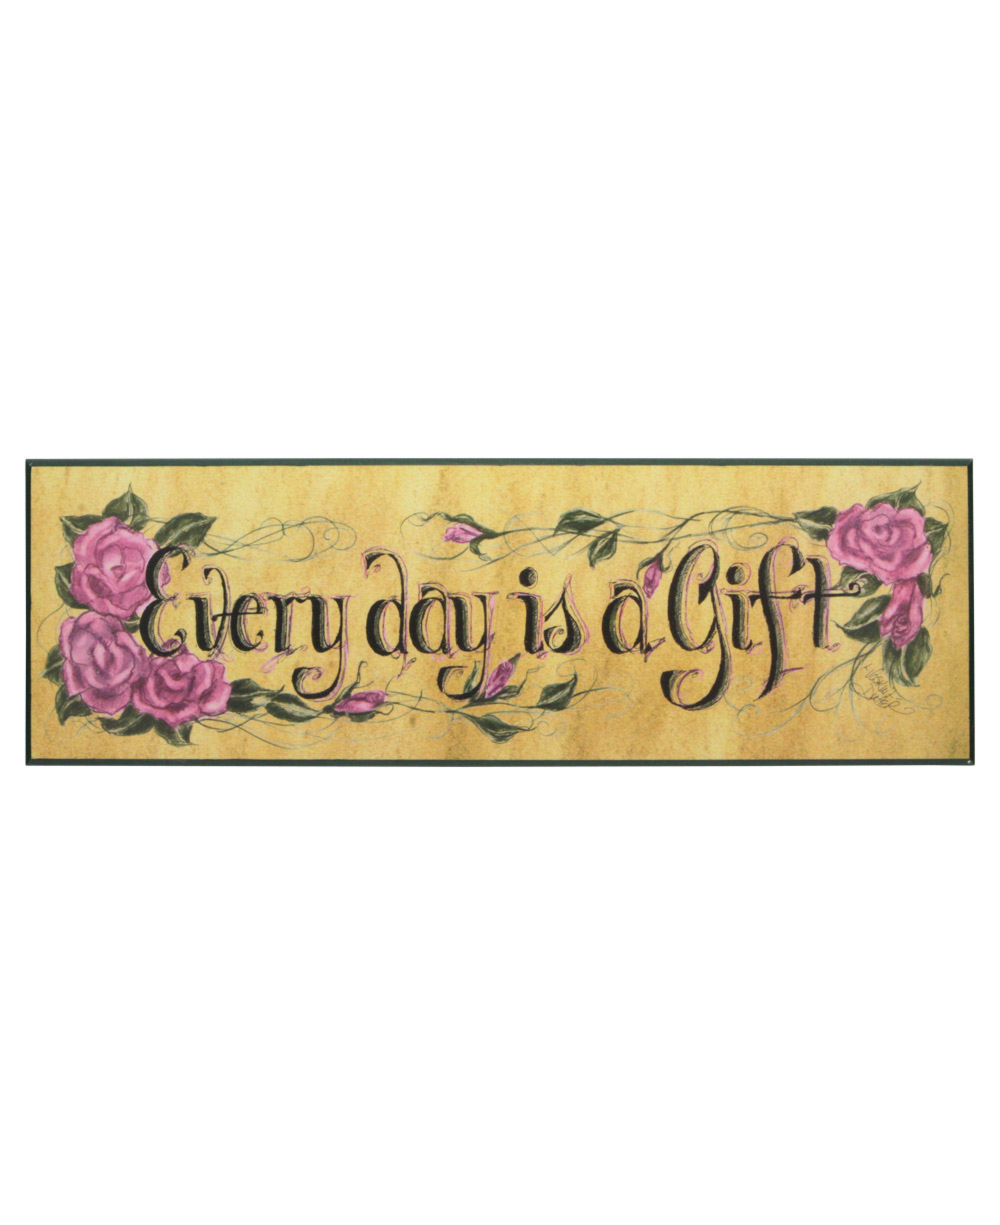 Quote Plaques: Gift Plaques With Quotes. QuotesGram